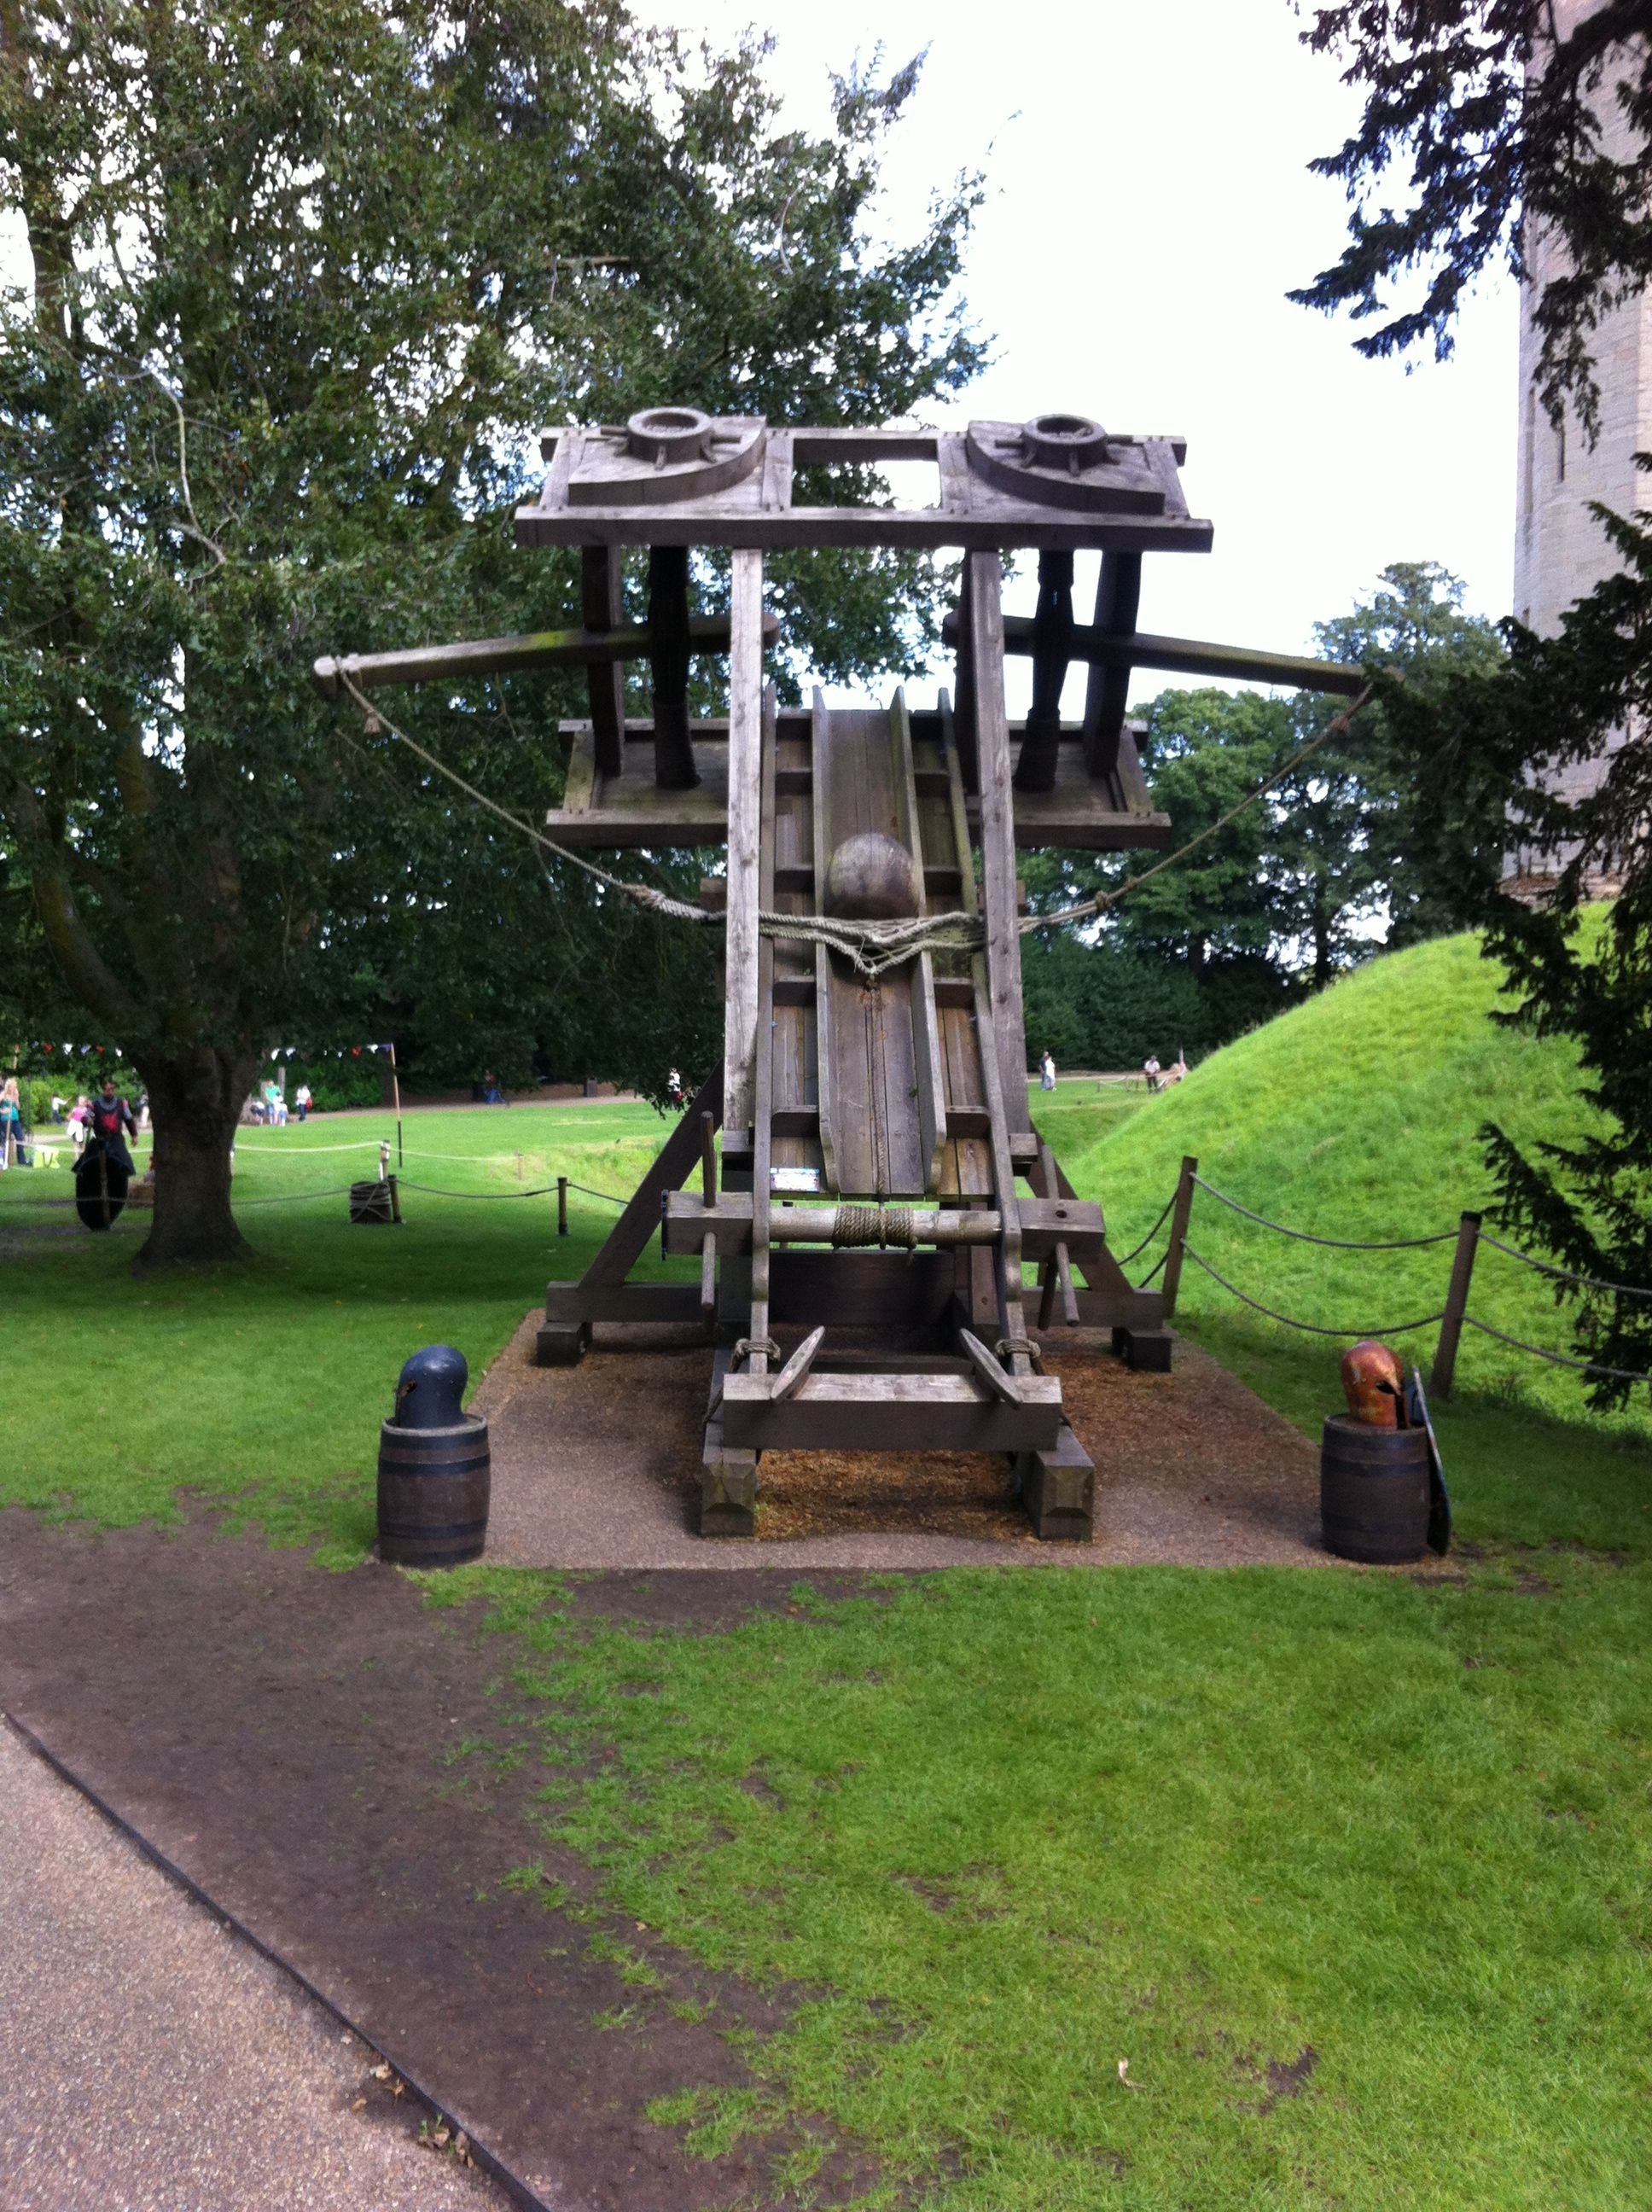 The Ballista Is An Excellent Example Of Projectile Motion